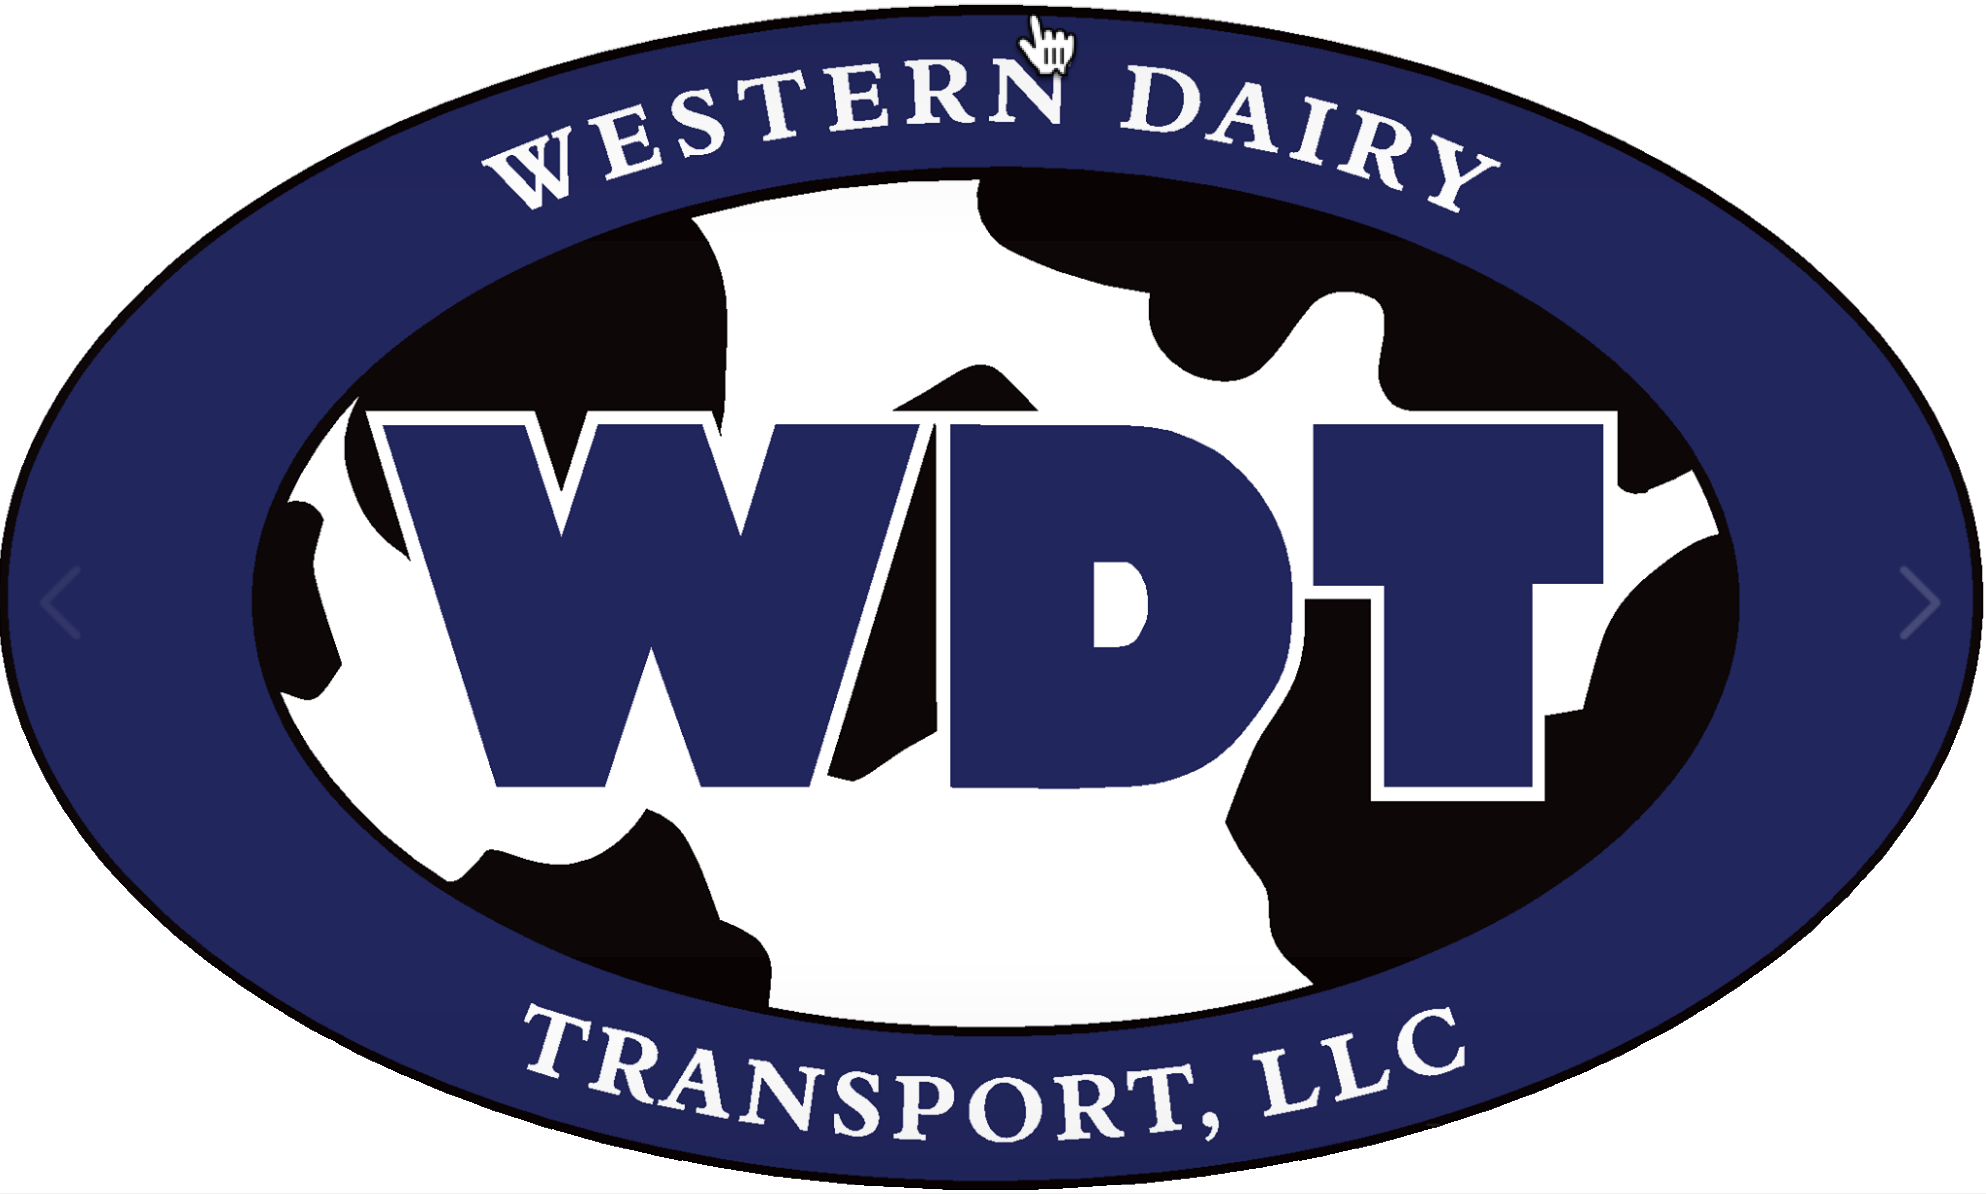 Western Dairy Transport - Cloud console allows for instant visibility into malware detections